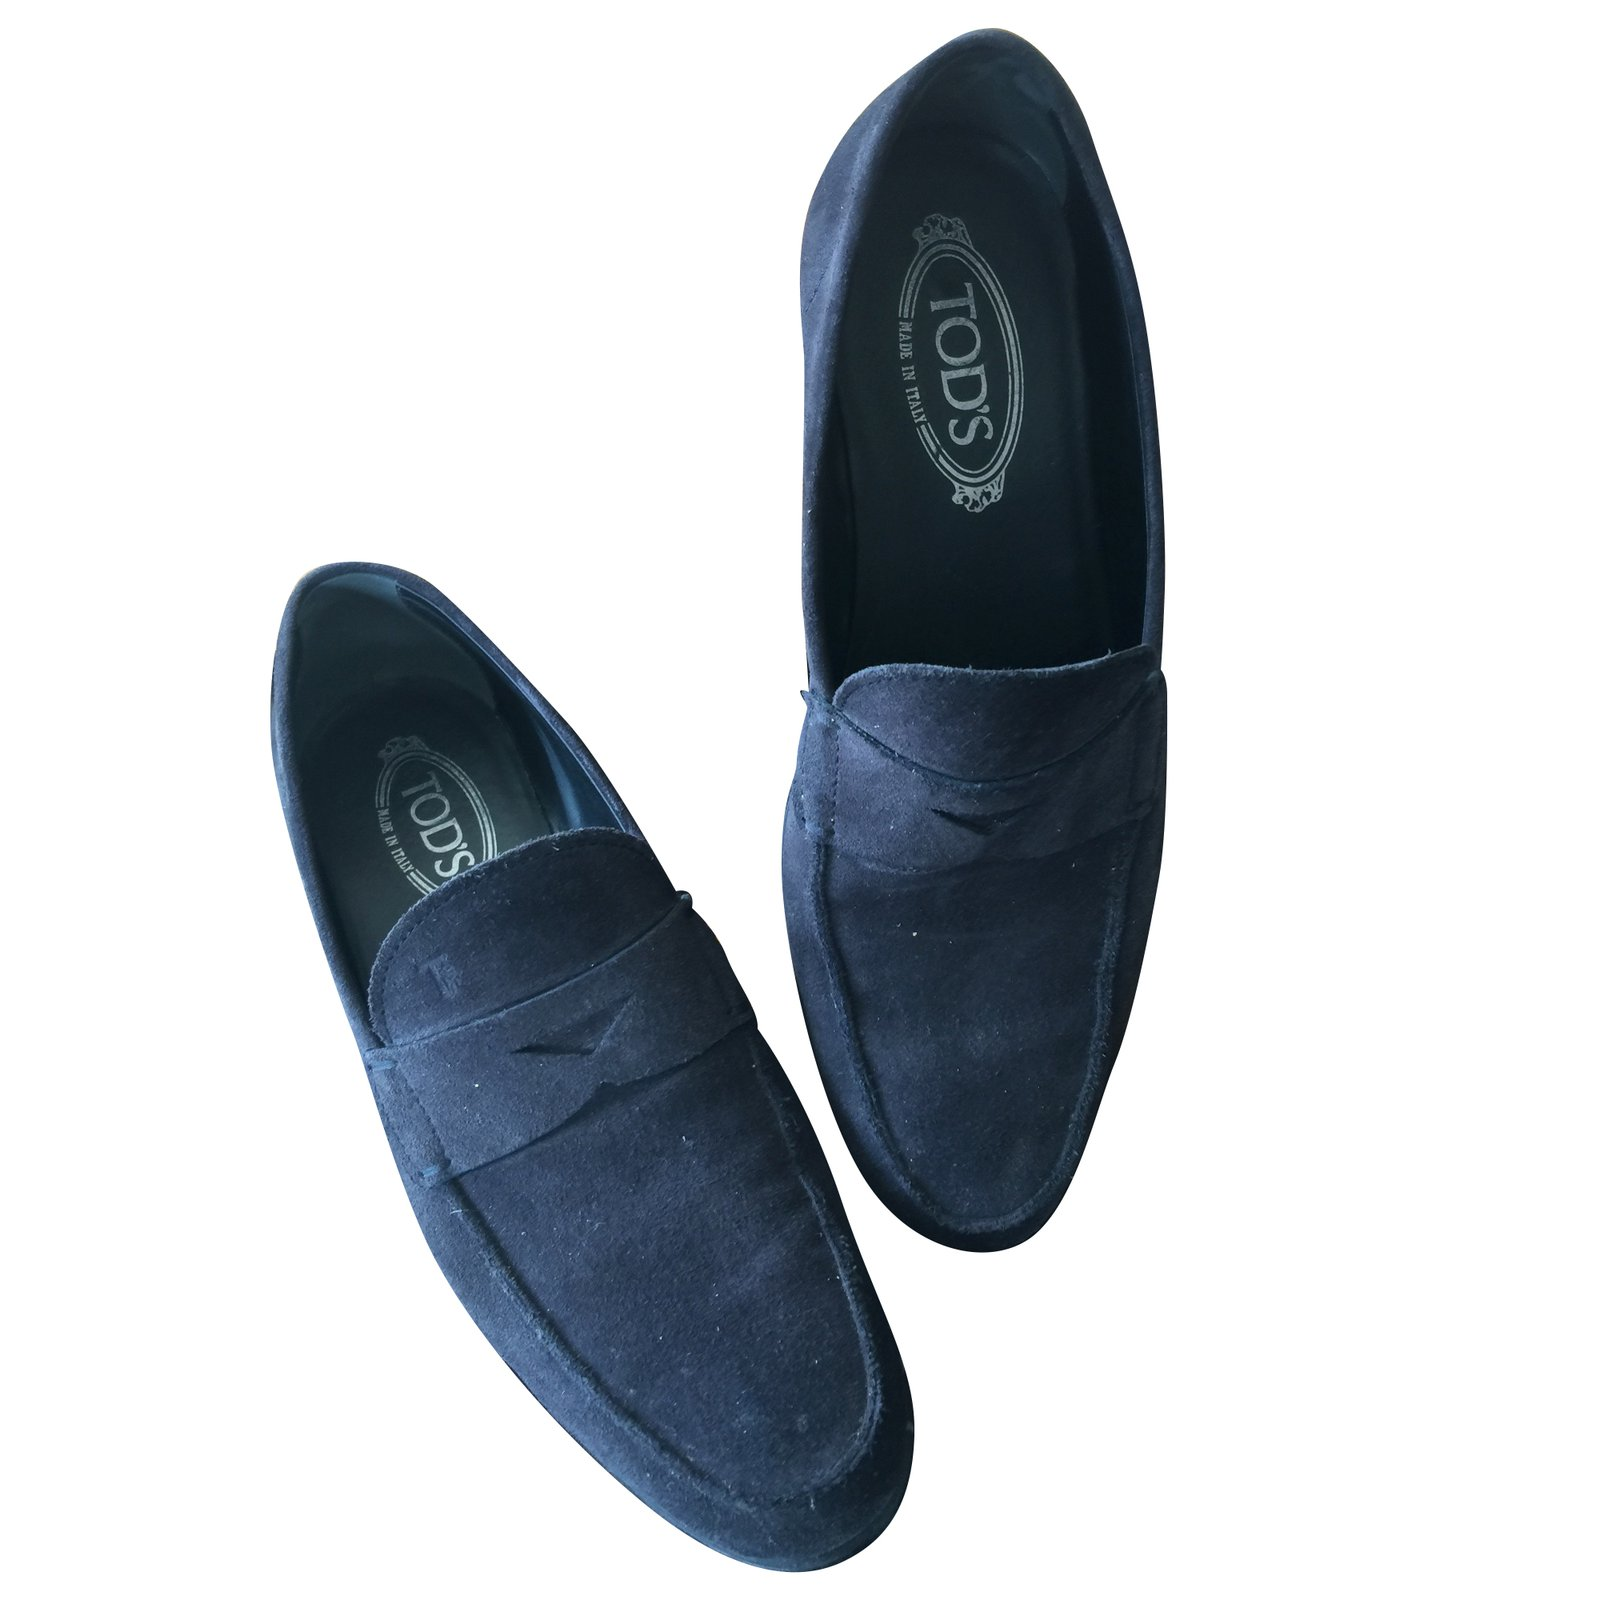 mocassins homme tod 39 s mocassins homme daim bleu marine ref. Black Bedroom Furniture Sets. Home Design Ideas